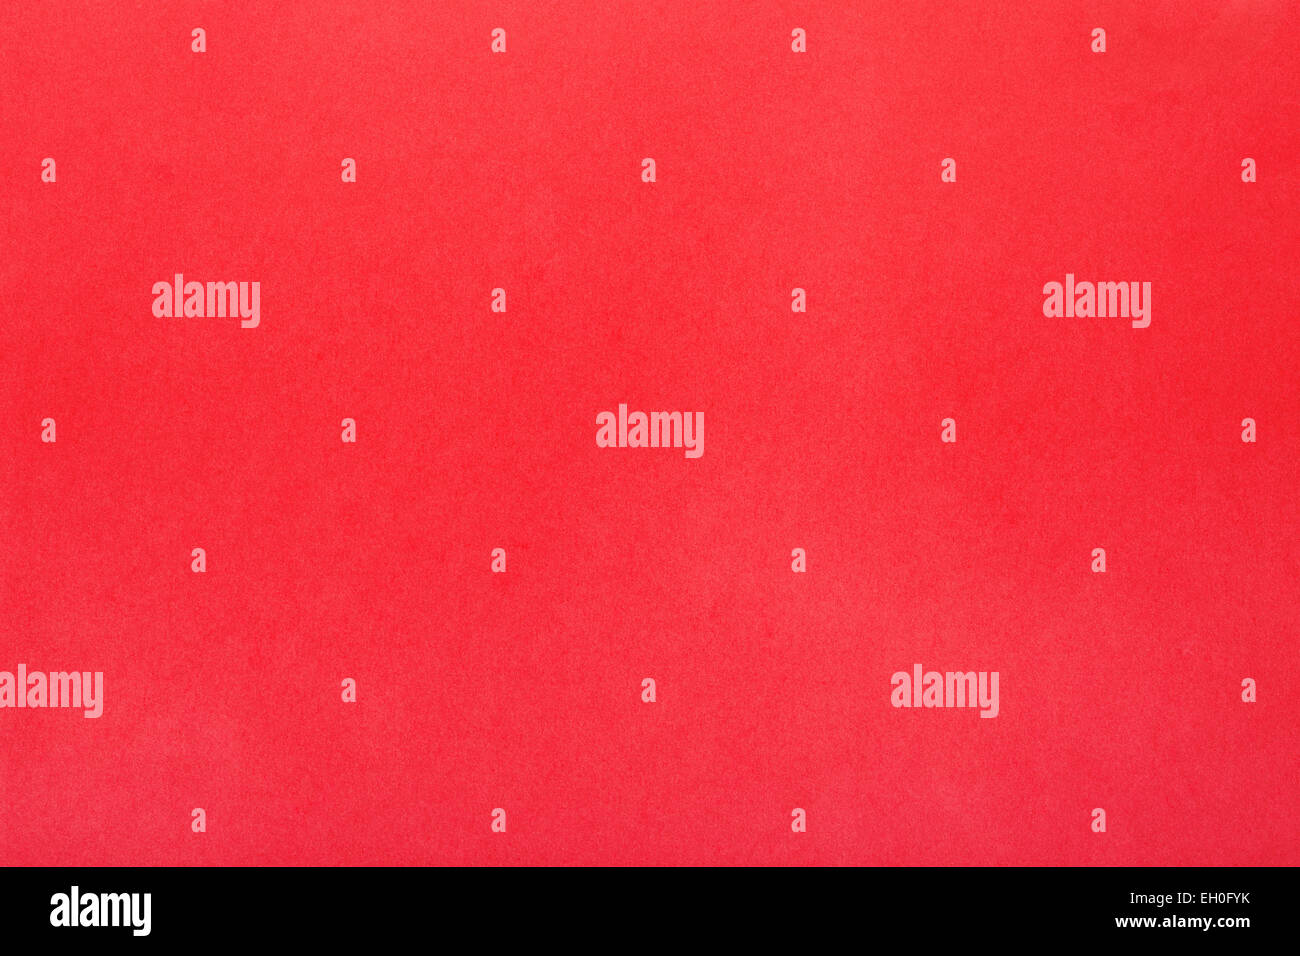 Red background, simple paper texture - Stock Image